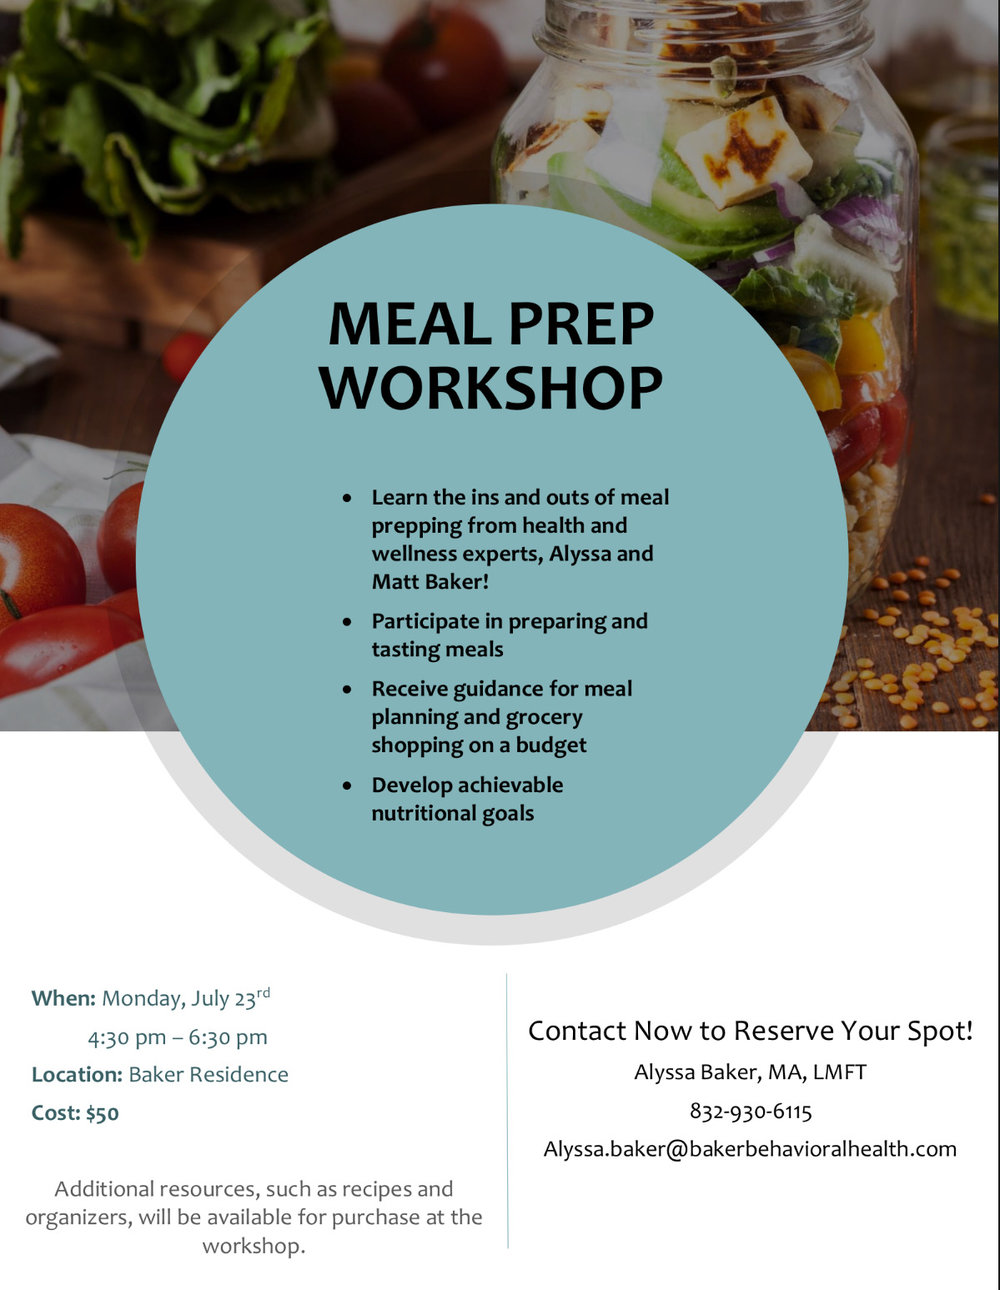 Meal prep image flyer.jpg